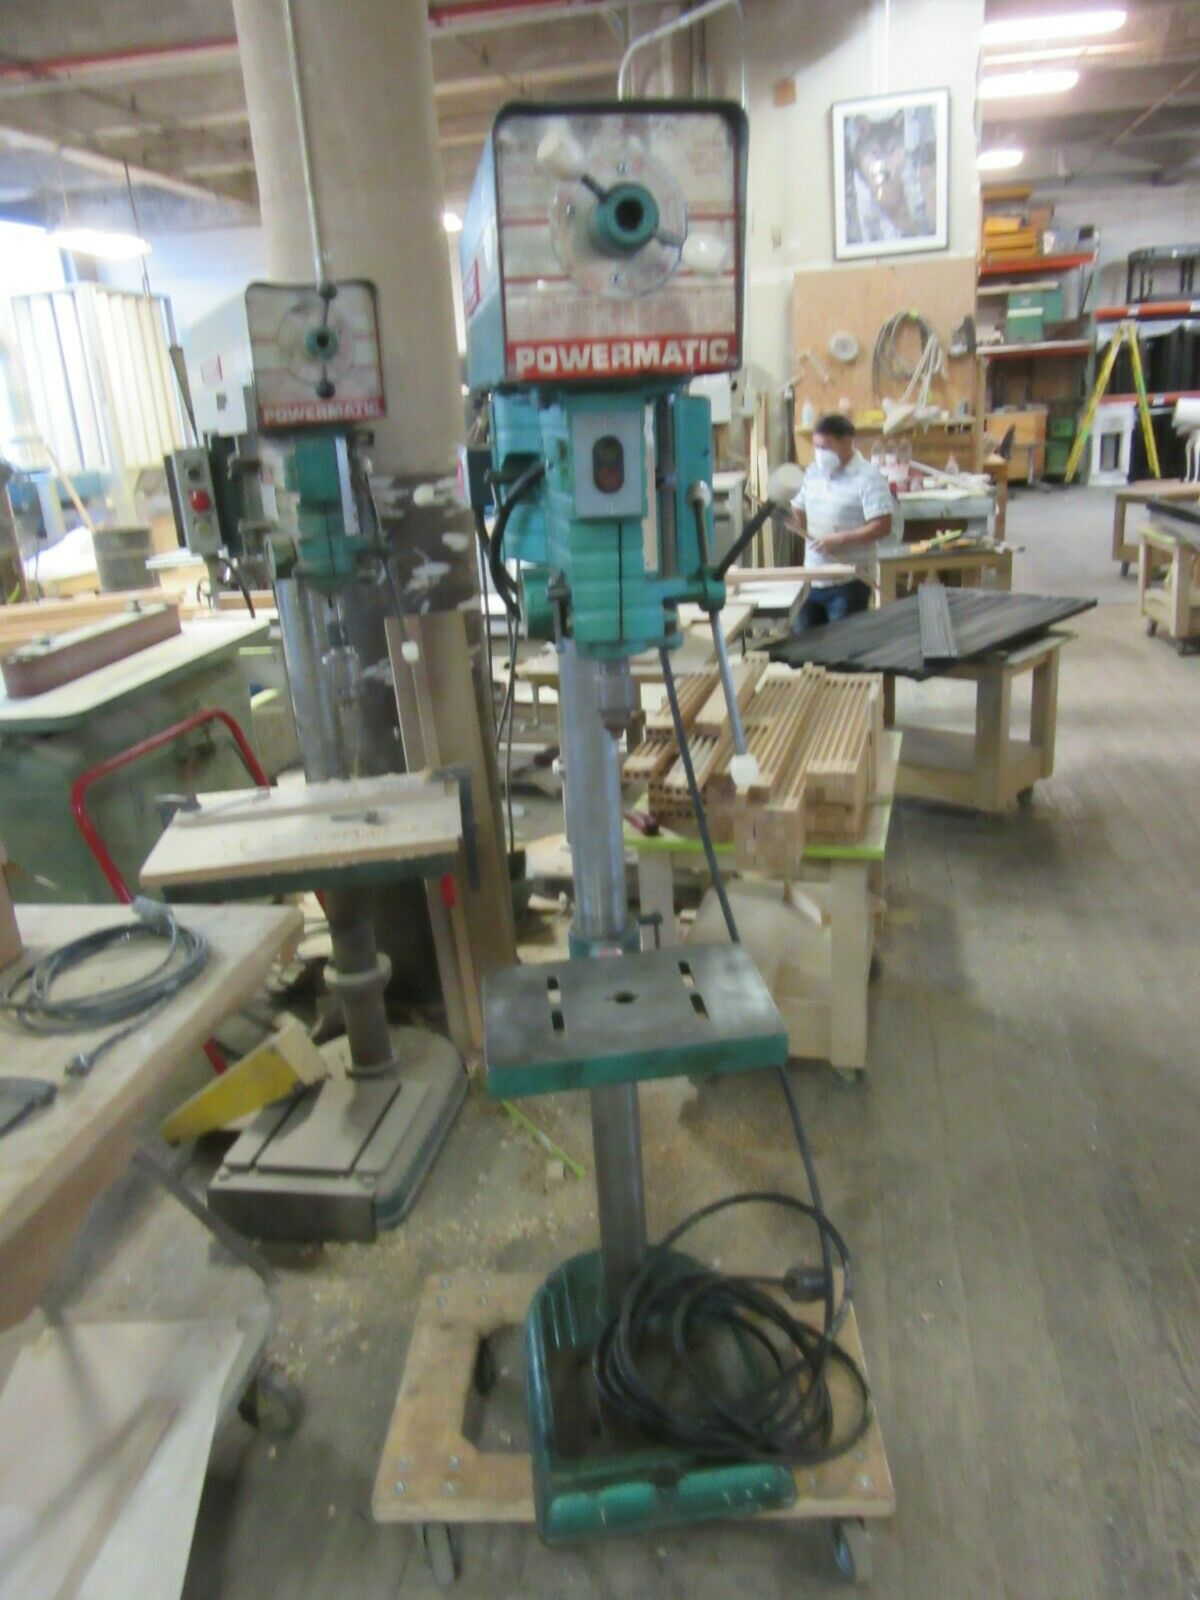 Powermatic Drill Press 1150 Verable speed spindle side pulley #1150 powermatic